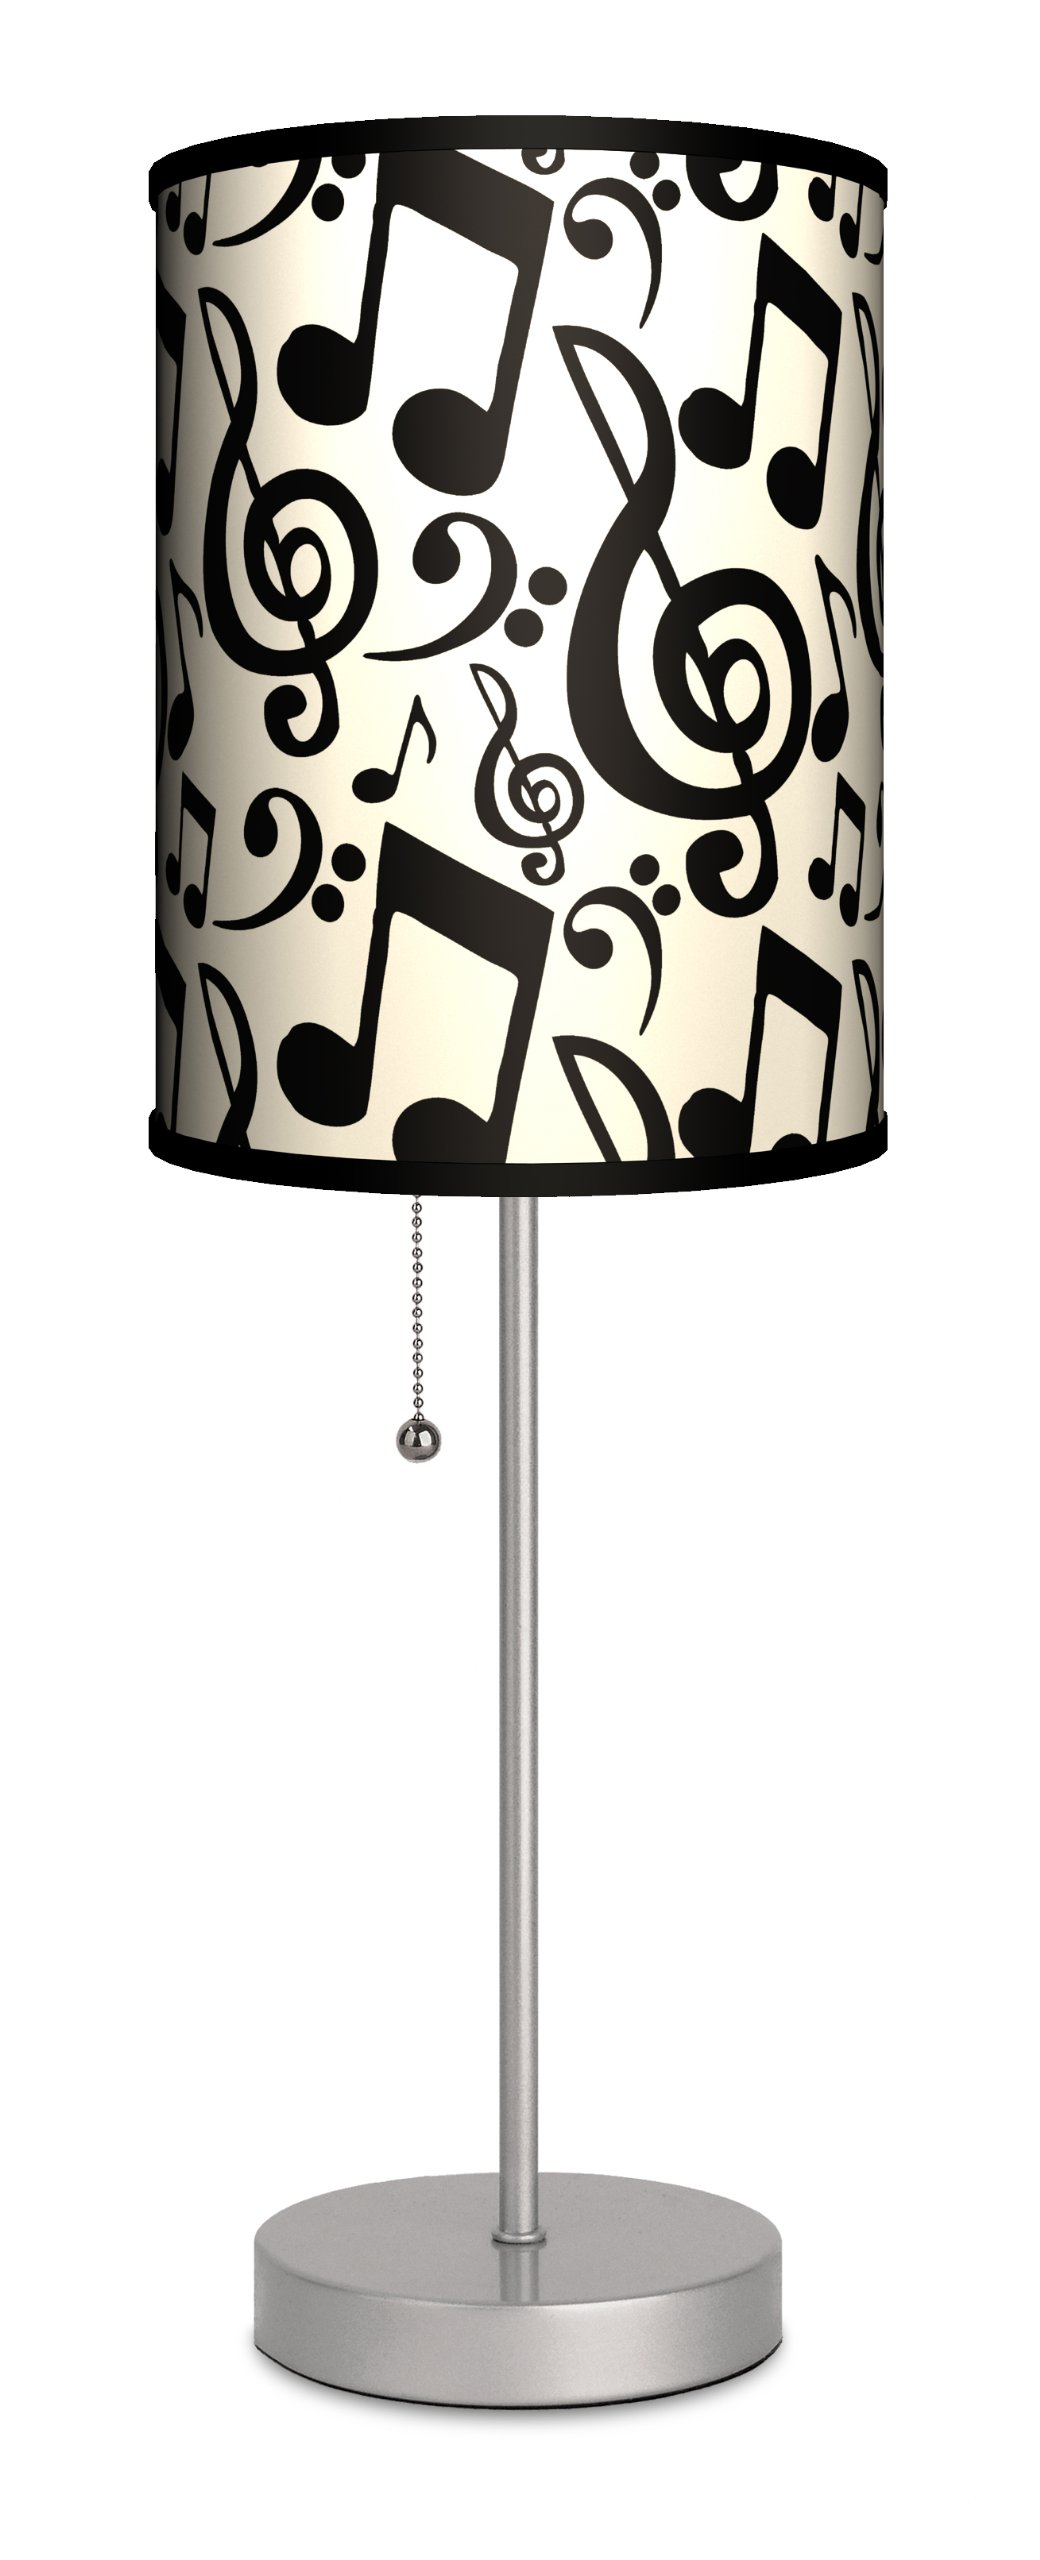 Lamp-In-A-Box SPS-MUS-NOTAT Music Sport Silver Lamp